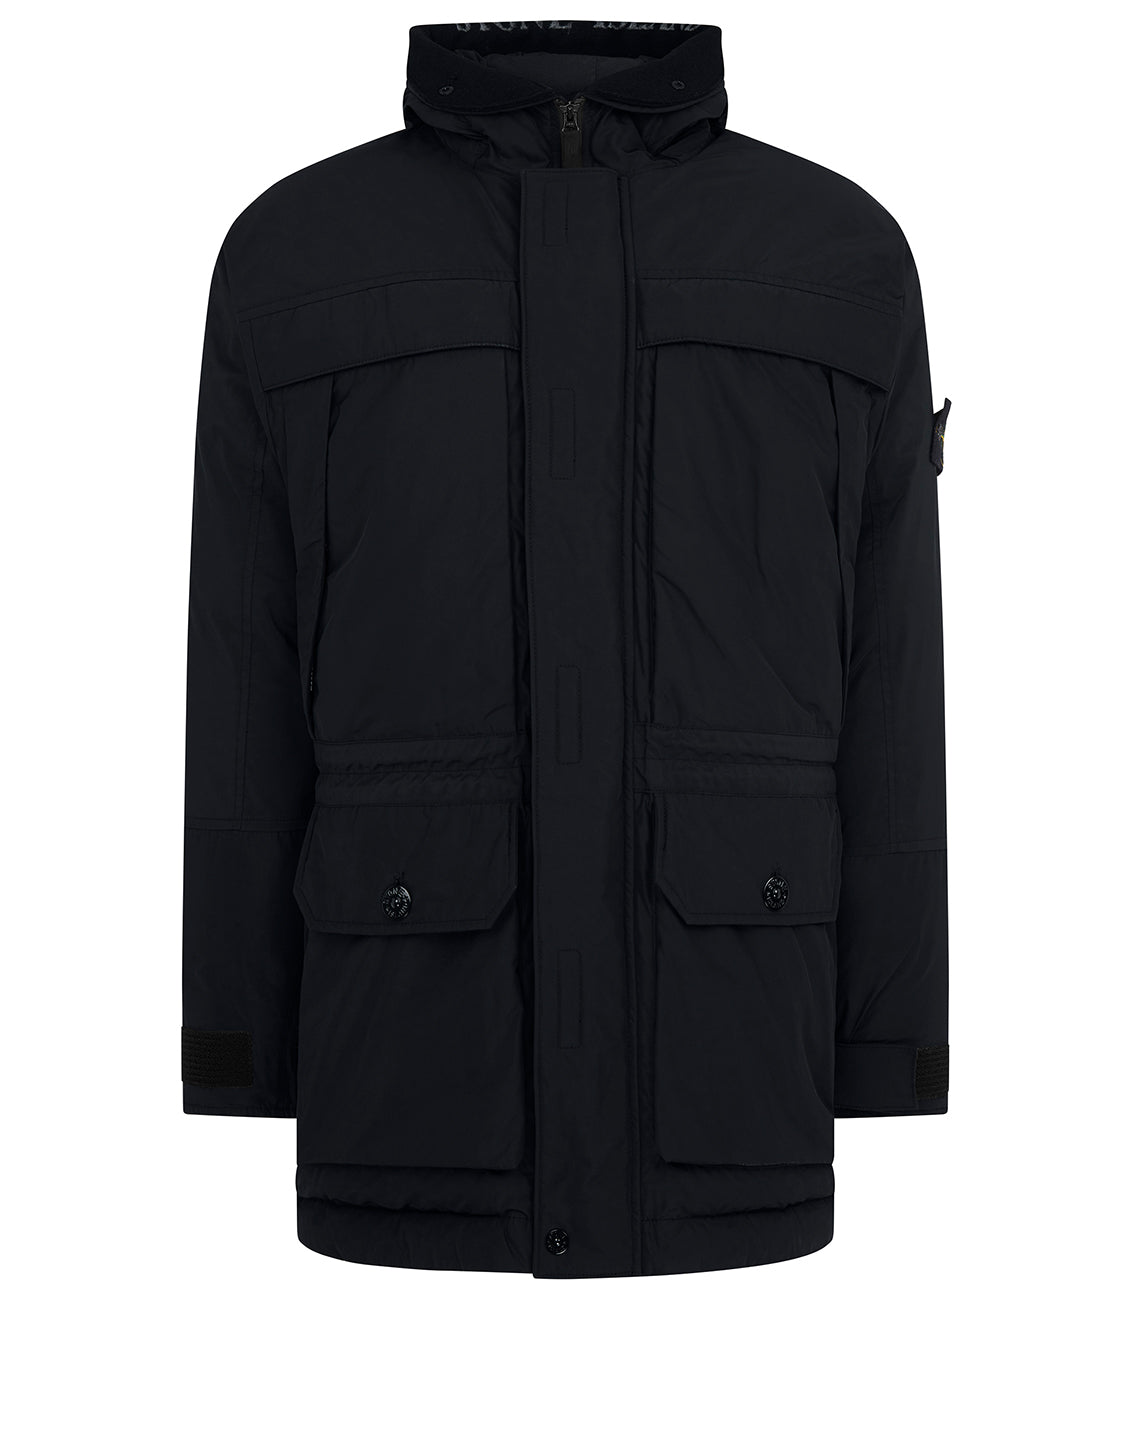 40626 Micro Reps Down Hooded Jacket in Black